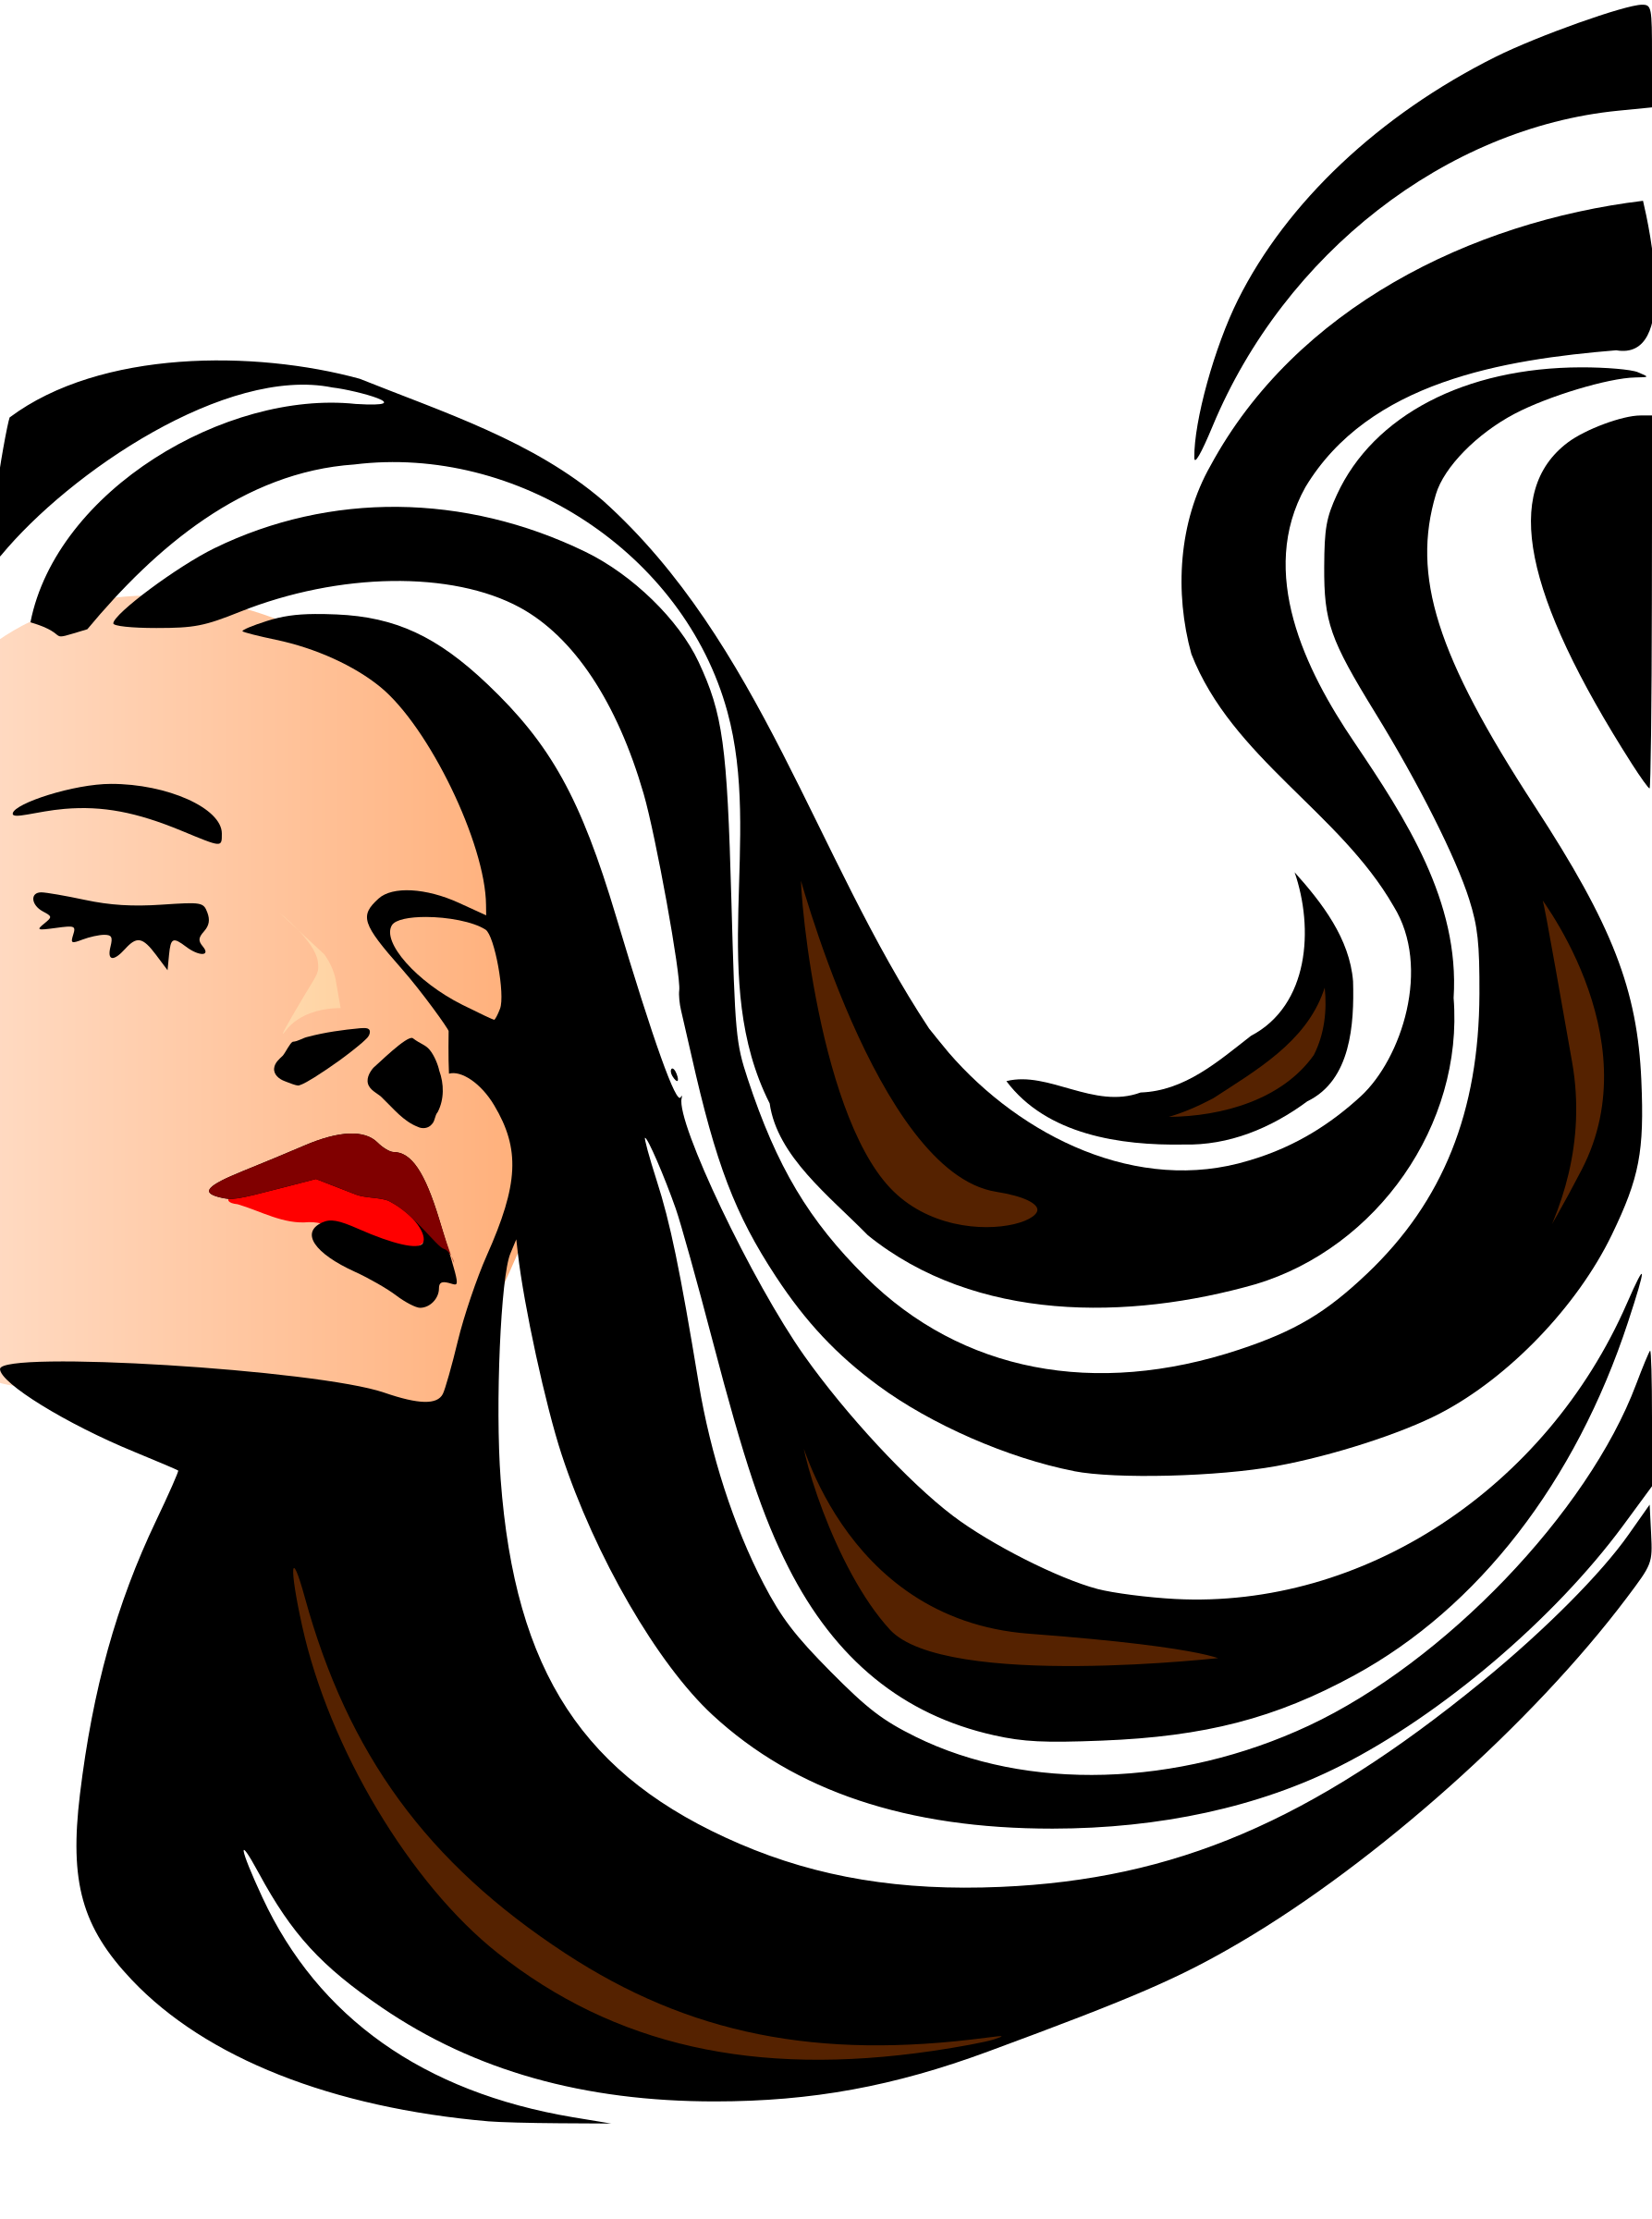 jpg free stock Woman big image png. Cosmetology clipart